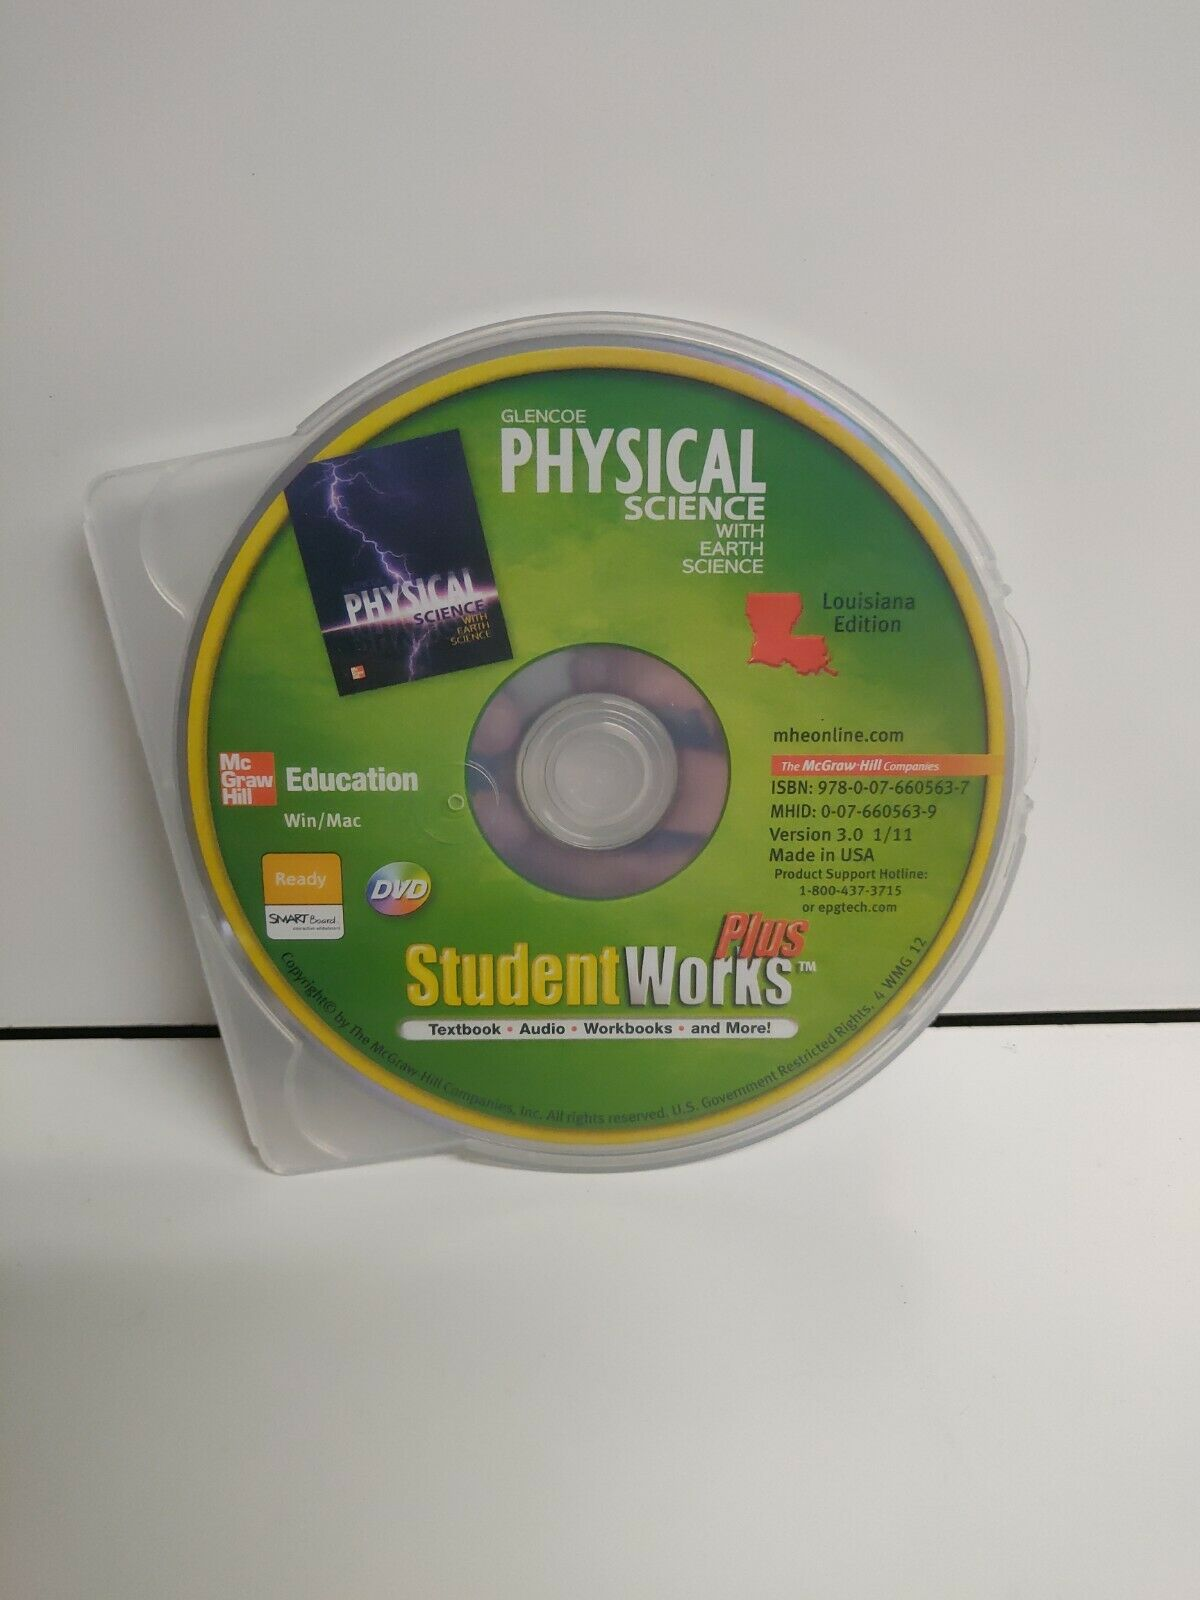 Glencoe Physical Science With Earth Science Student Works Plus 3